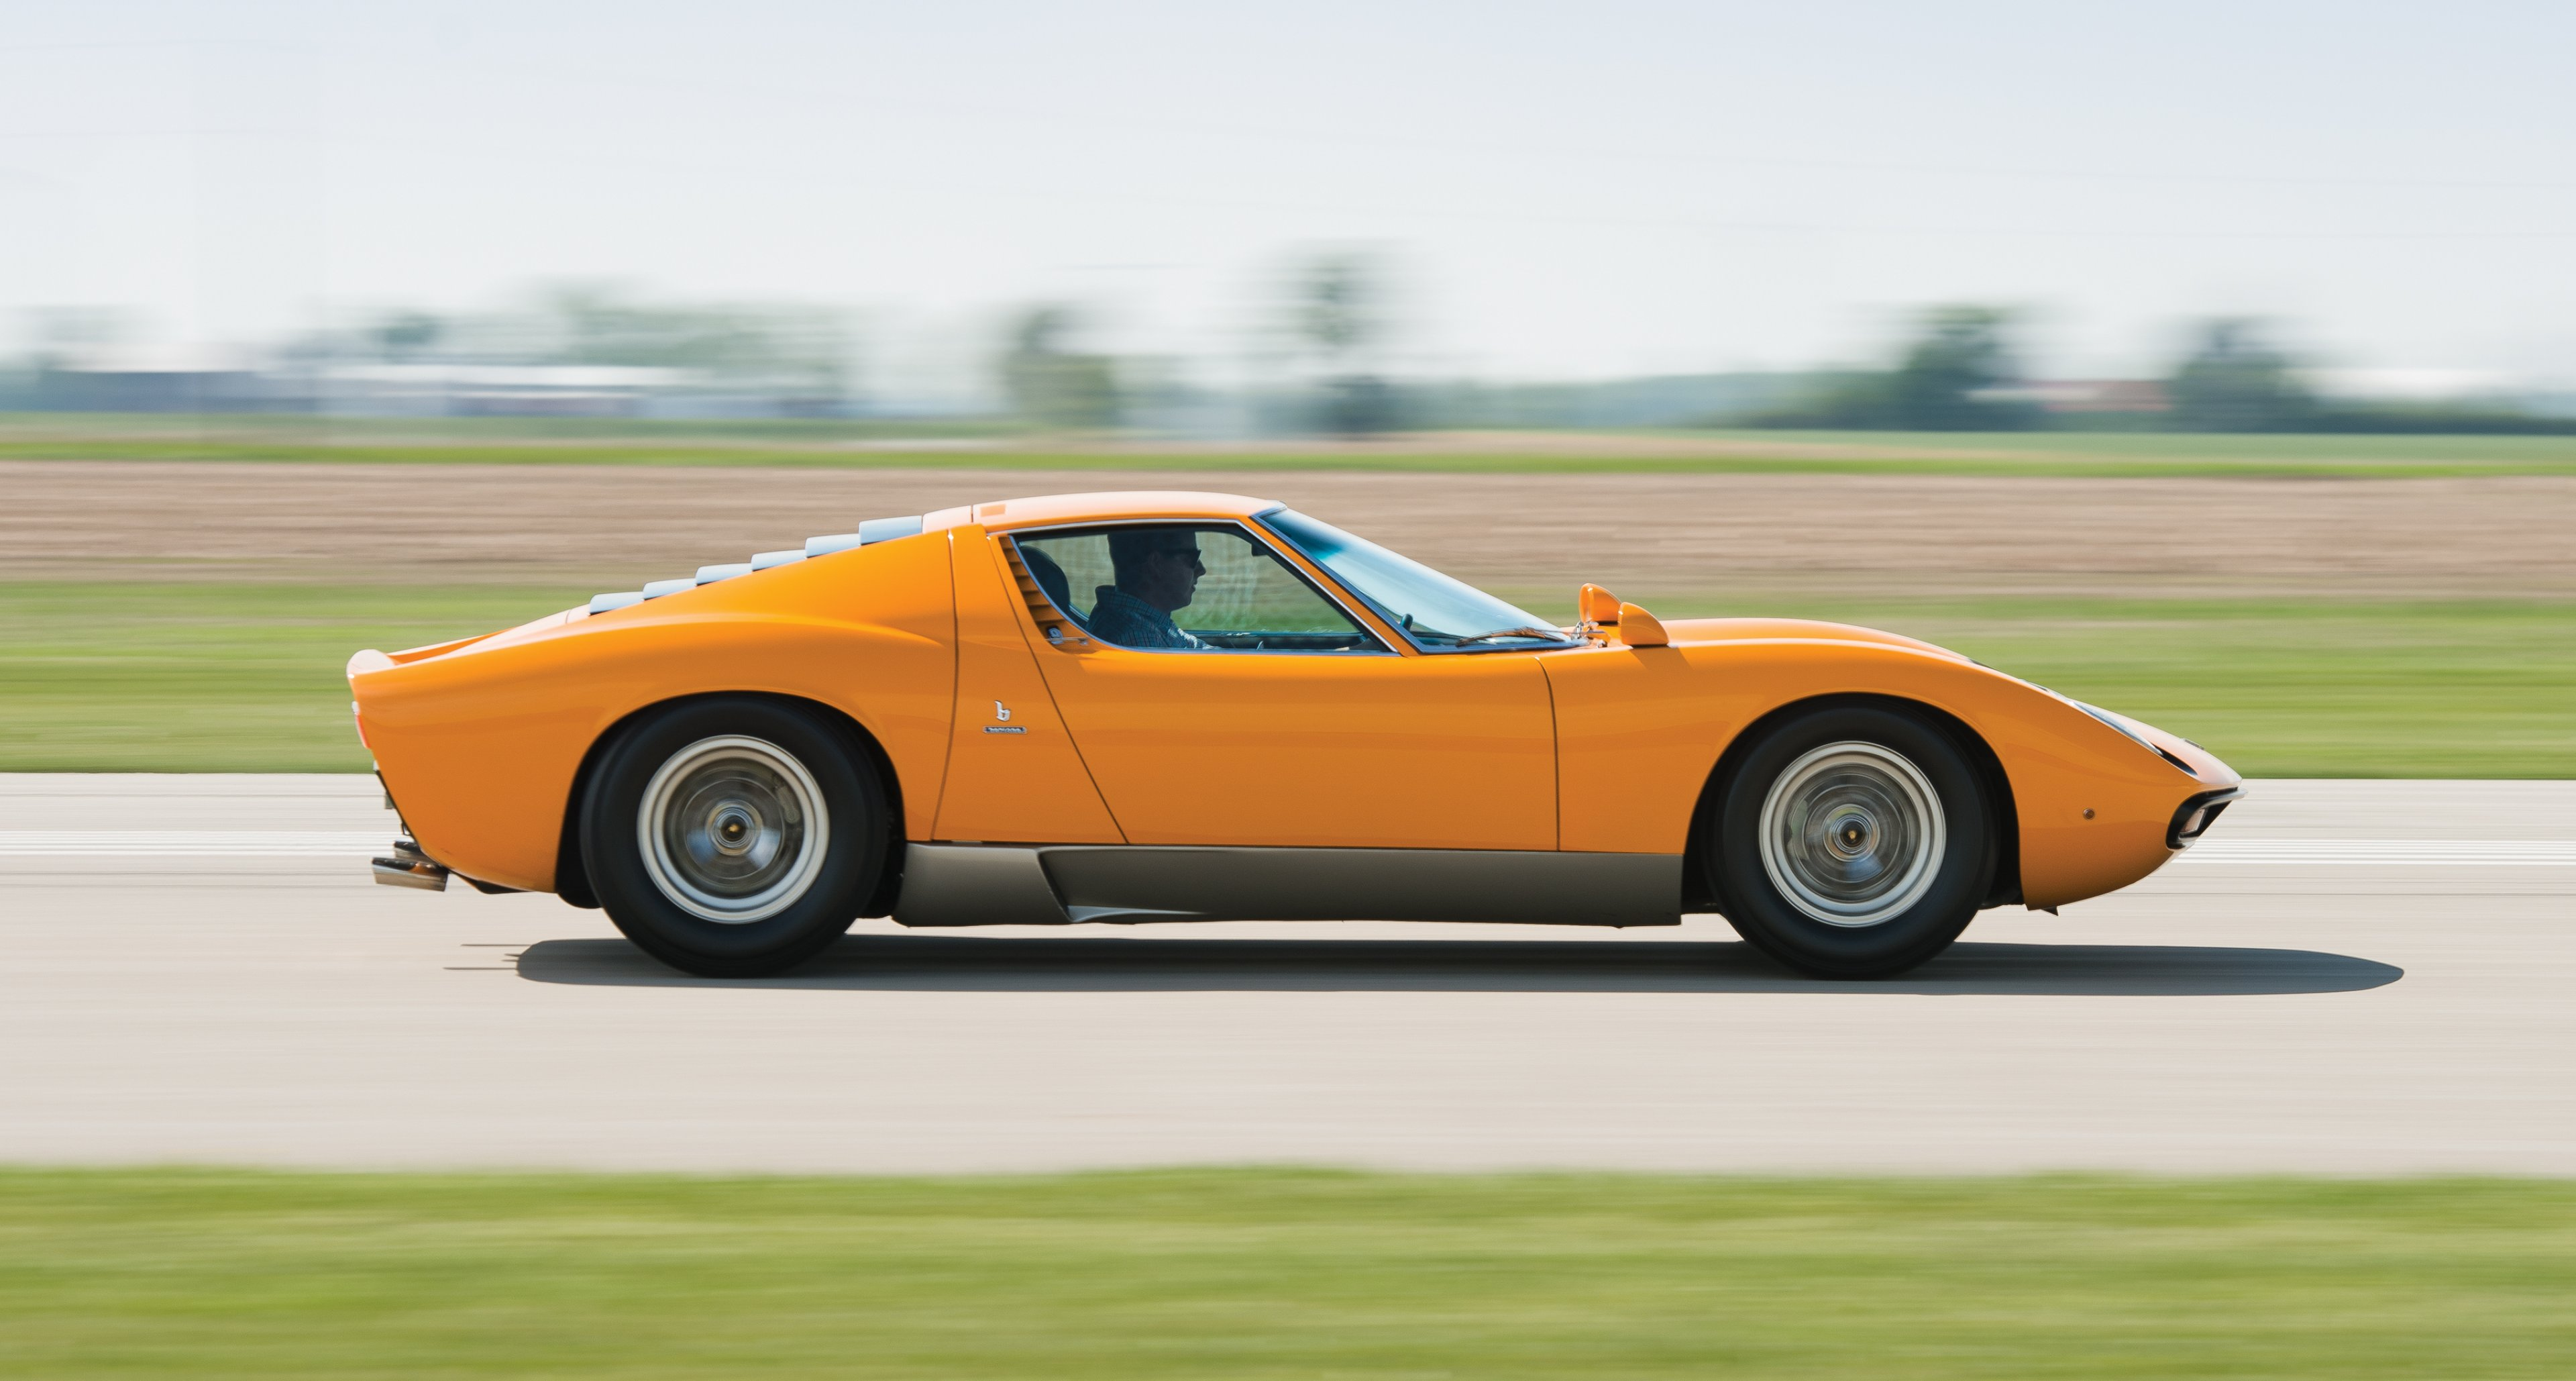 1971 Lamborghini Miura SV to be auctioned at RM's Monterey auction 2014